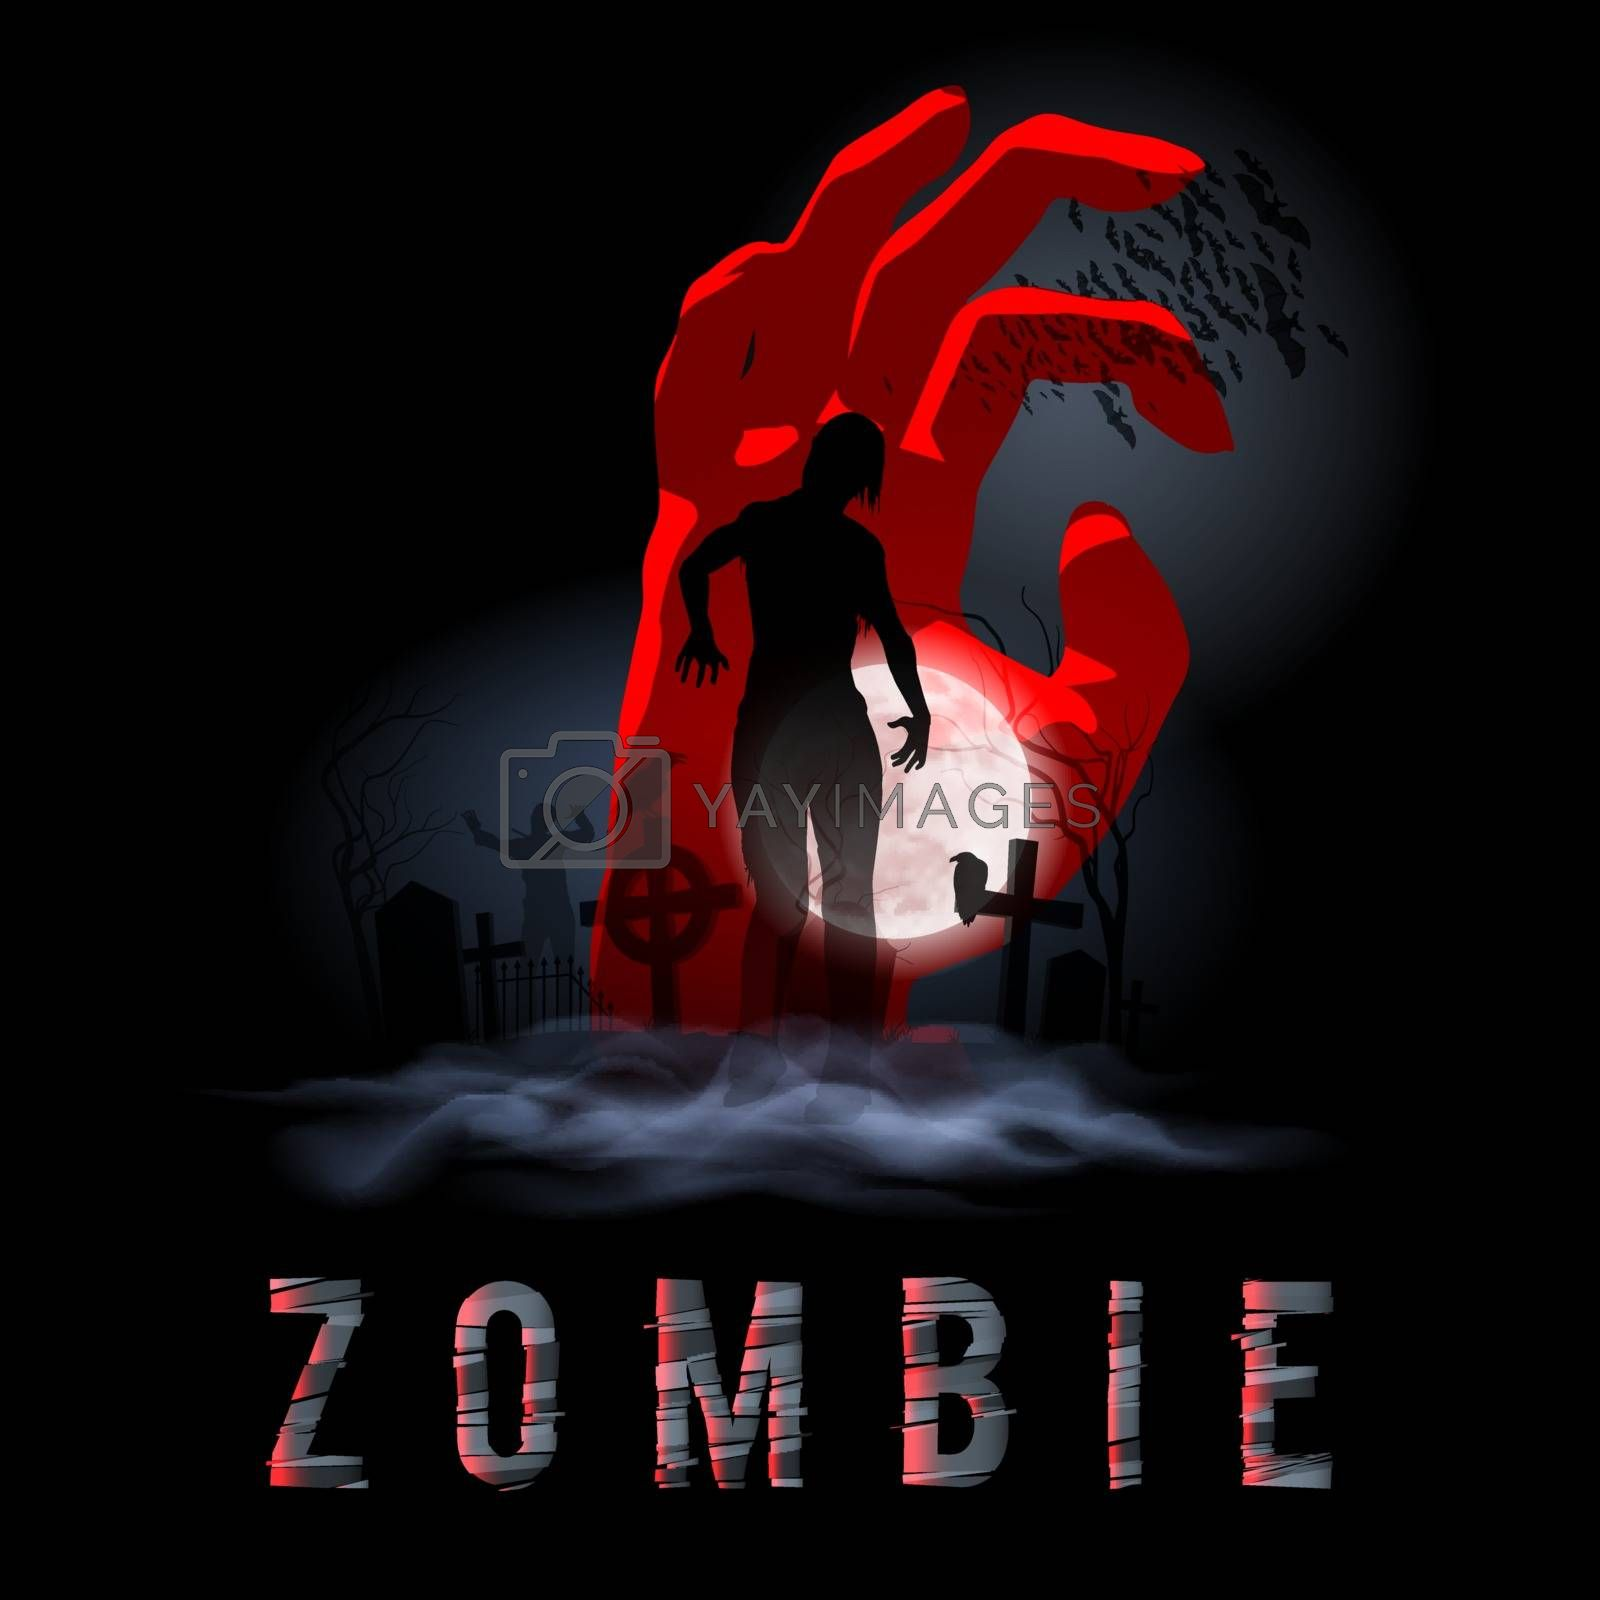 Zombie Walking out from Grave. Silhouettes Illustration for Halloween Poster